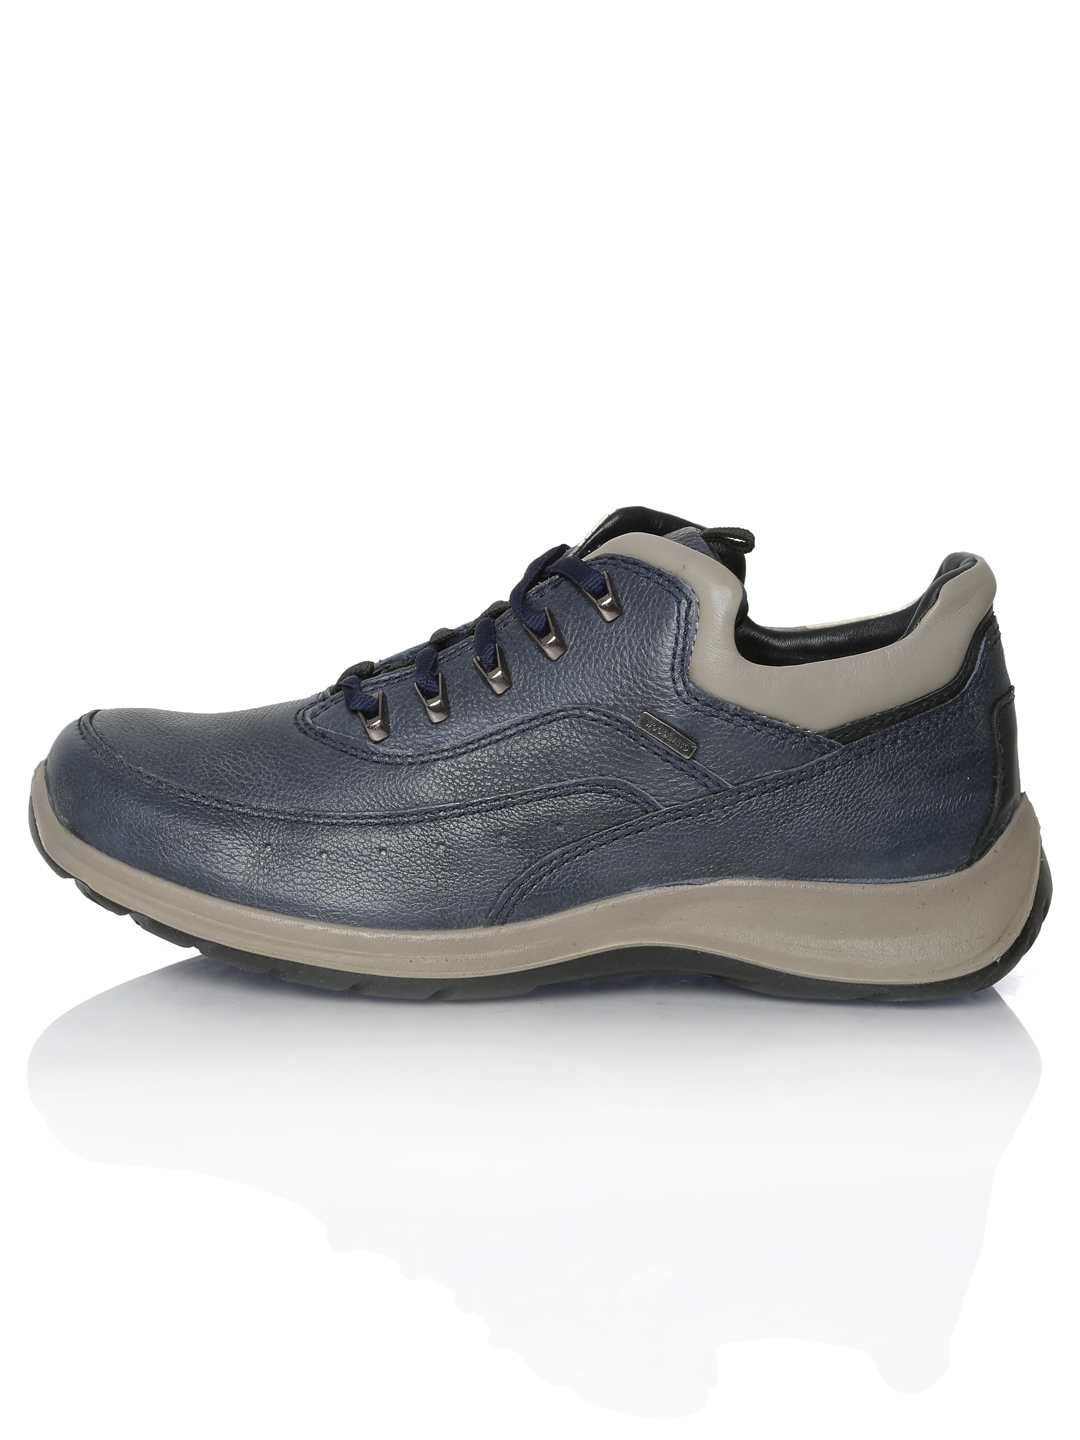 Ucb Leather Shoes